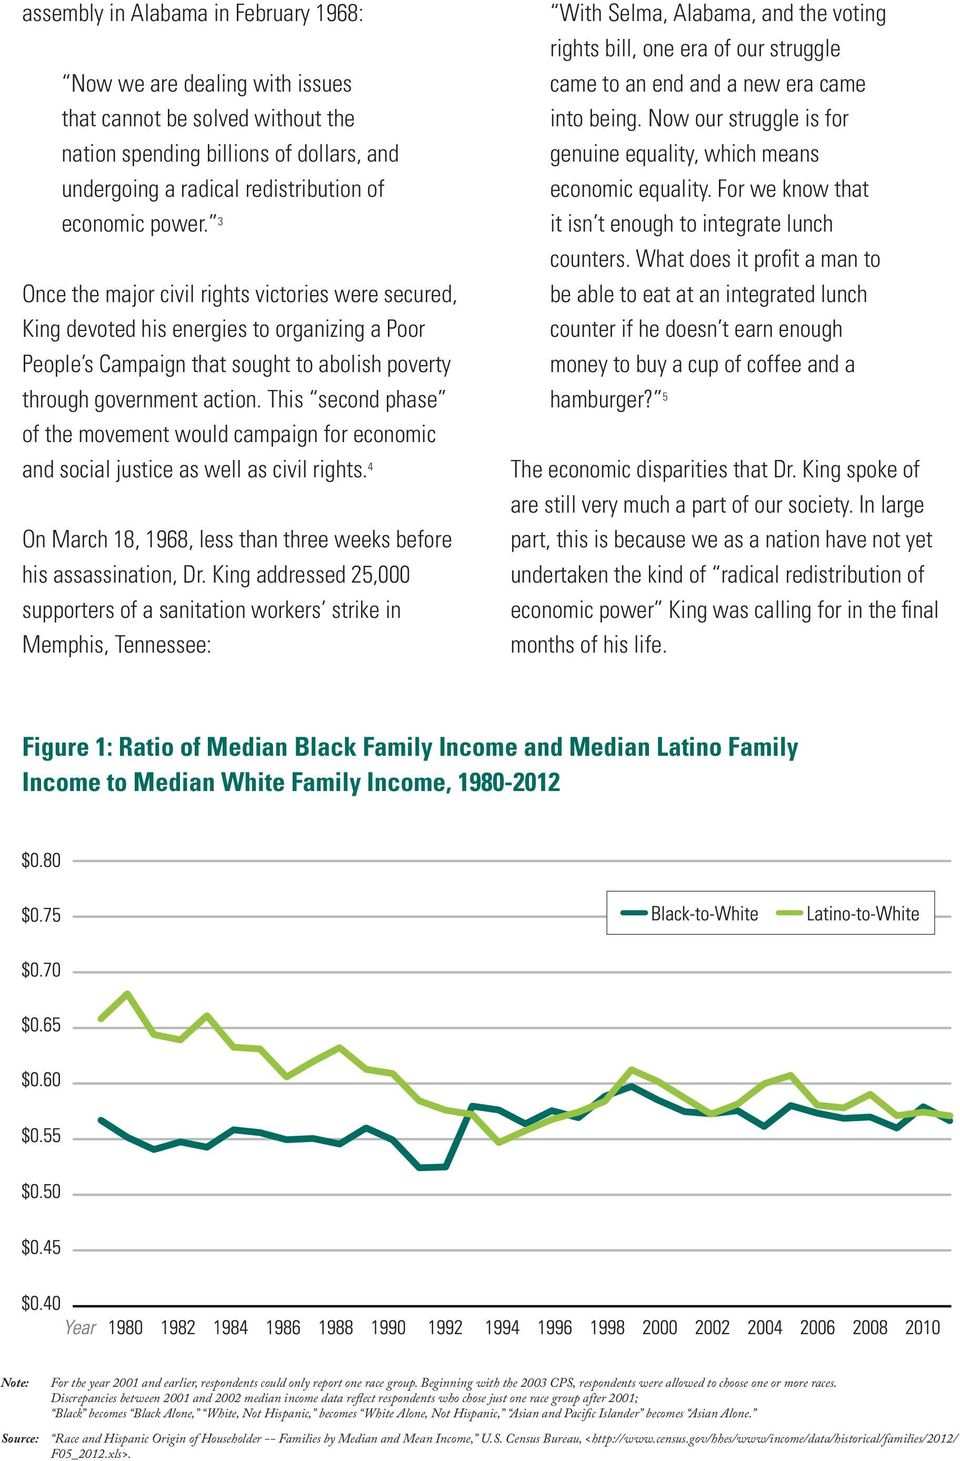 Discrepancies between 2001 and 2002 median income data reflect respondents who chose just one race group after 2001; Black becomes Black Alone, White, Not Hispanic, becomes White